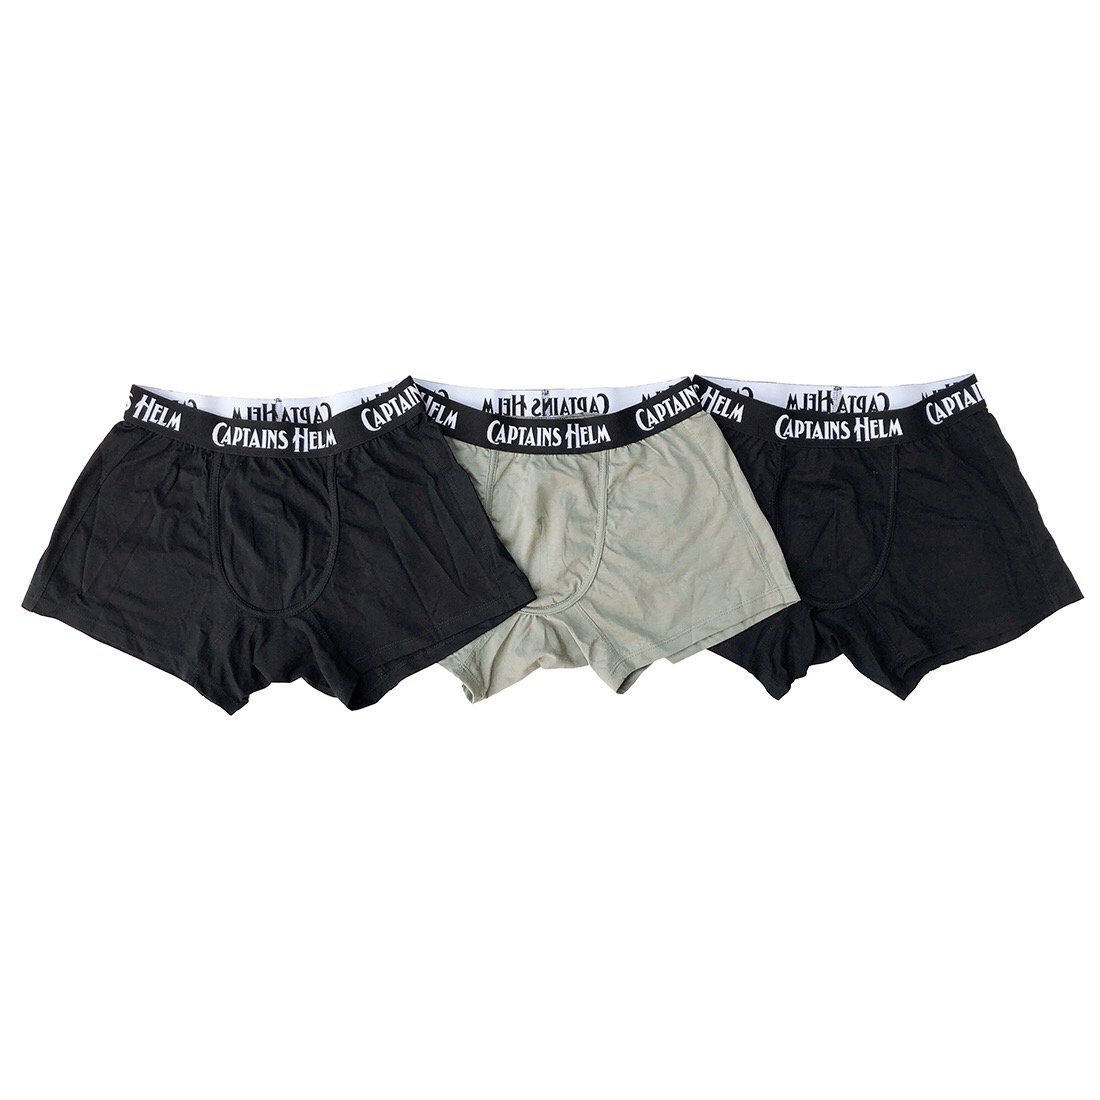 CAPTAINS HELM #3PACK UNDER PANTS